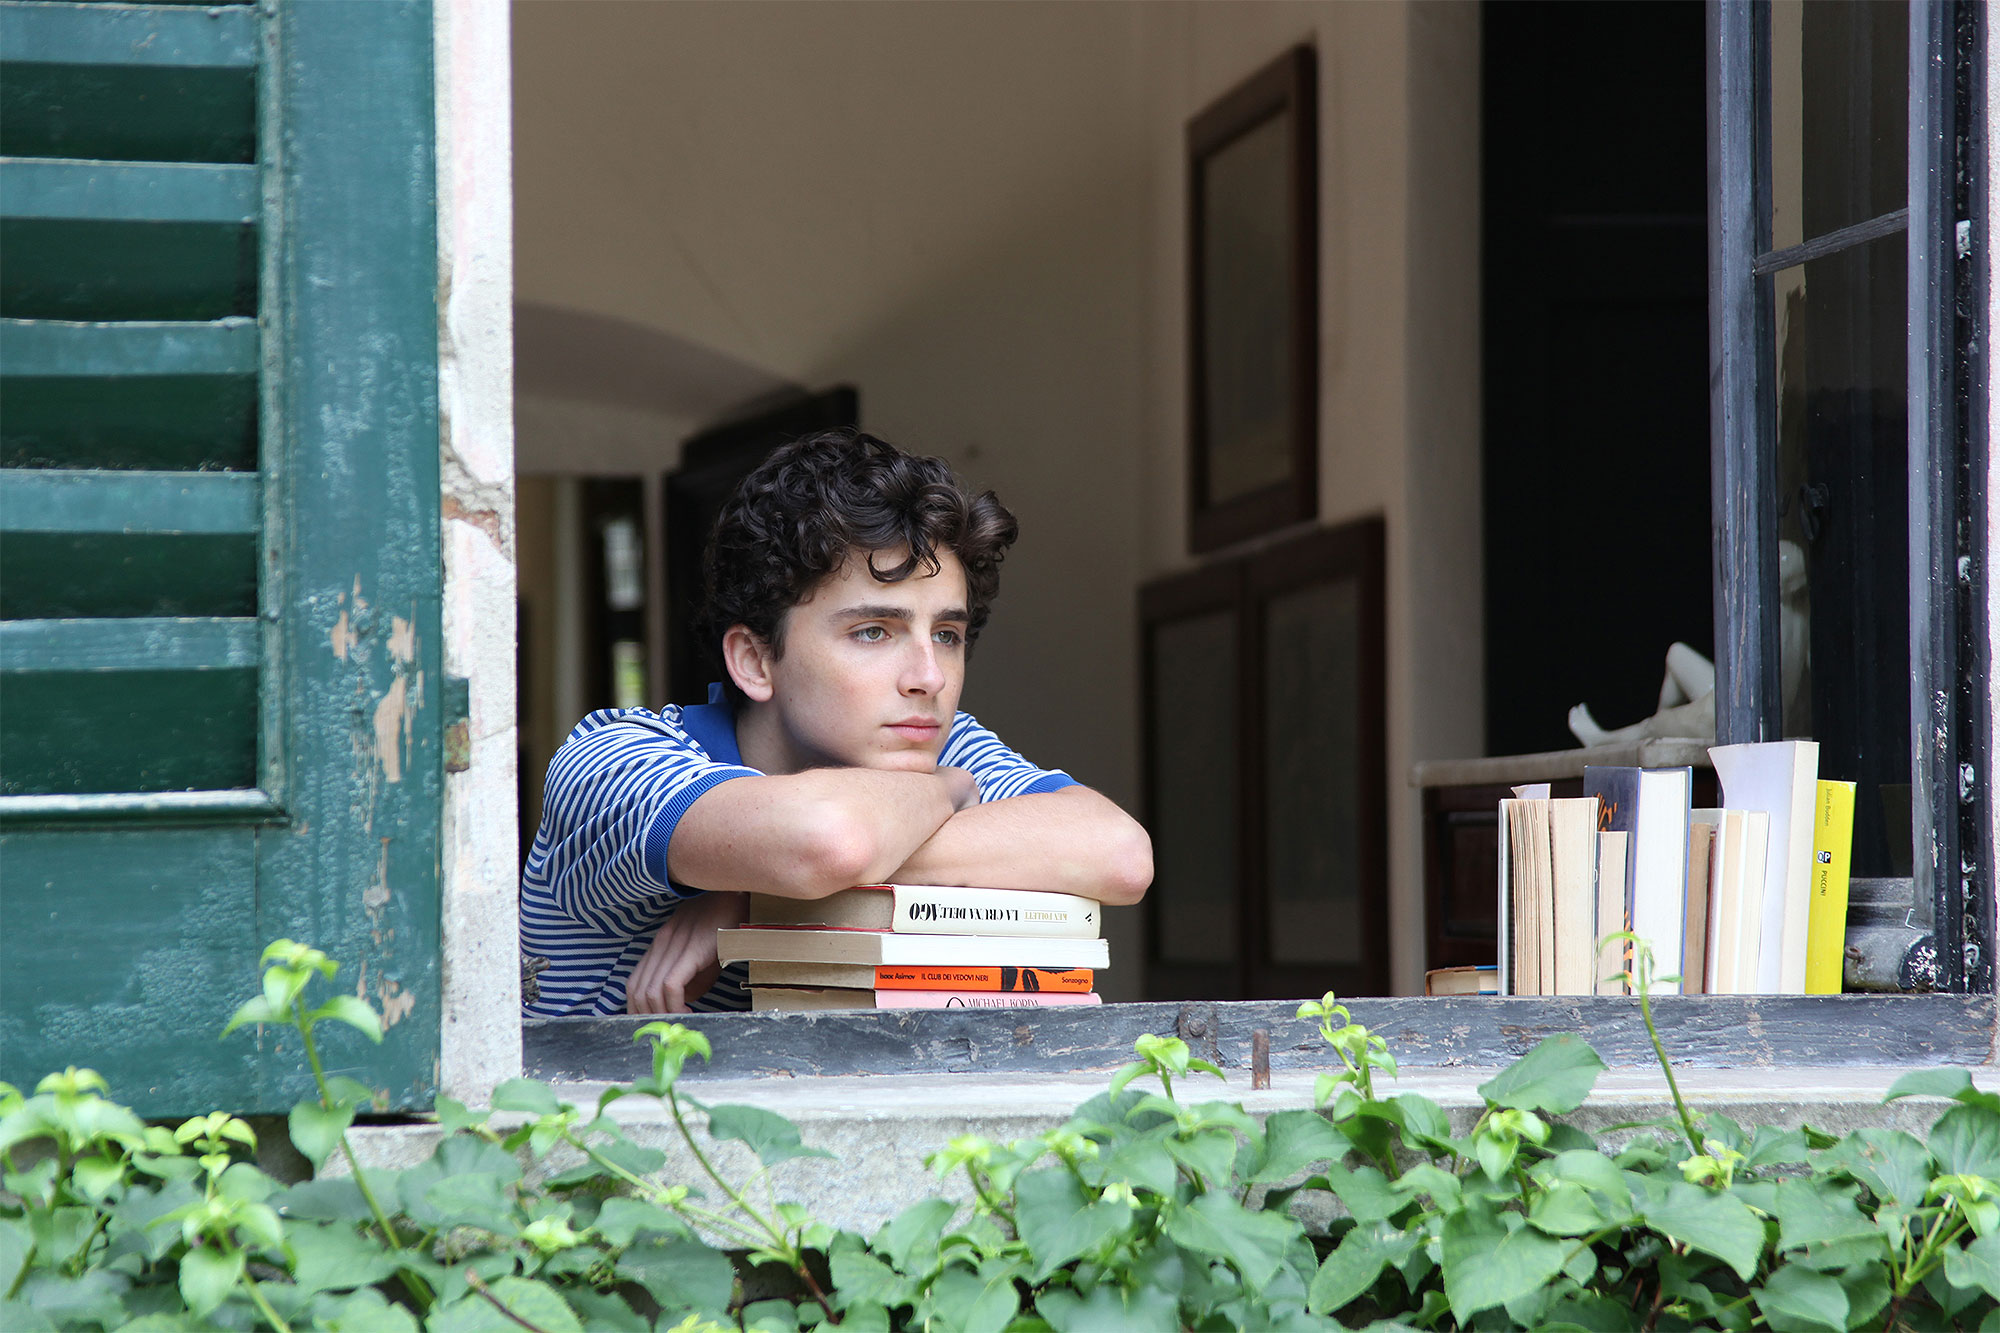 CALL ME BY YOUR NAME, Timothee Chalamet, 2017. ©Sony Pictures Classics/courtesy Everett Collection